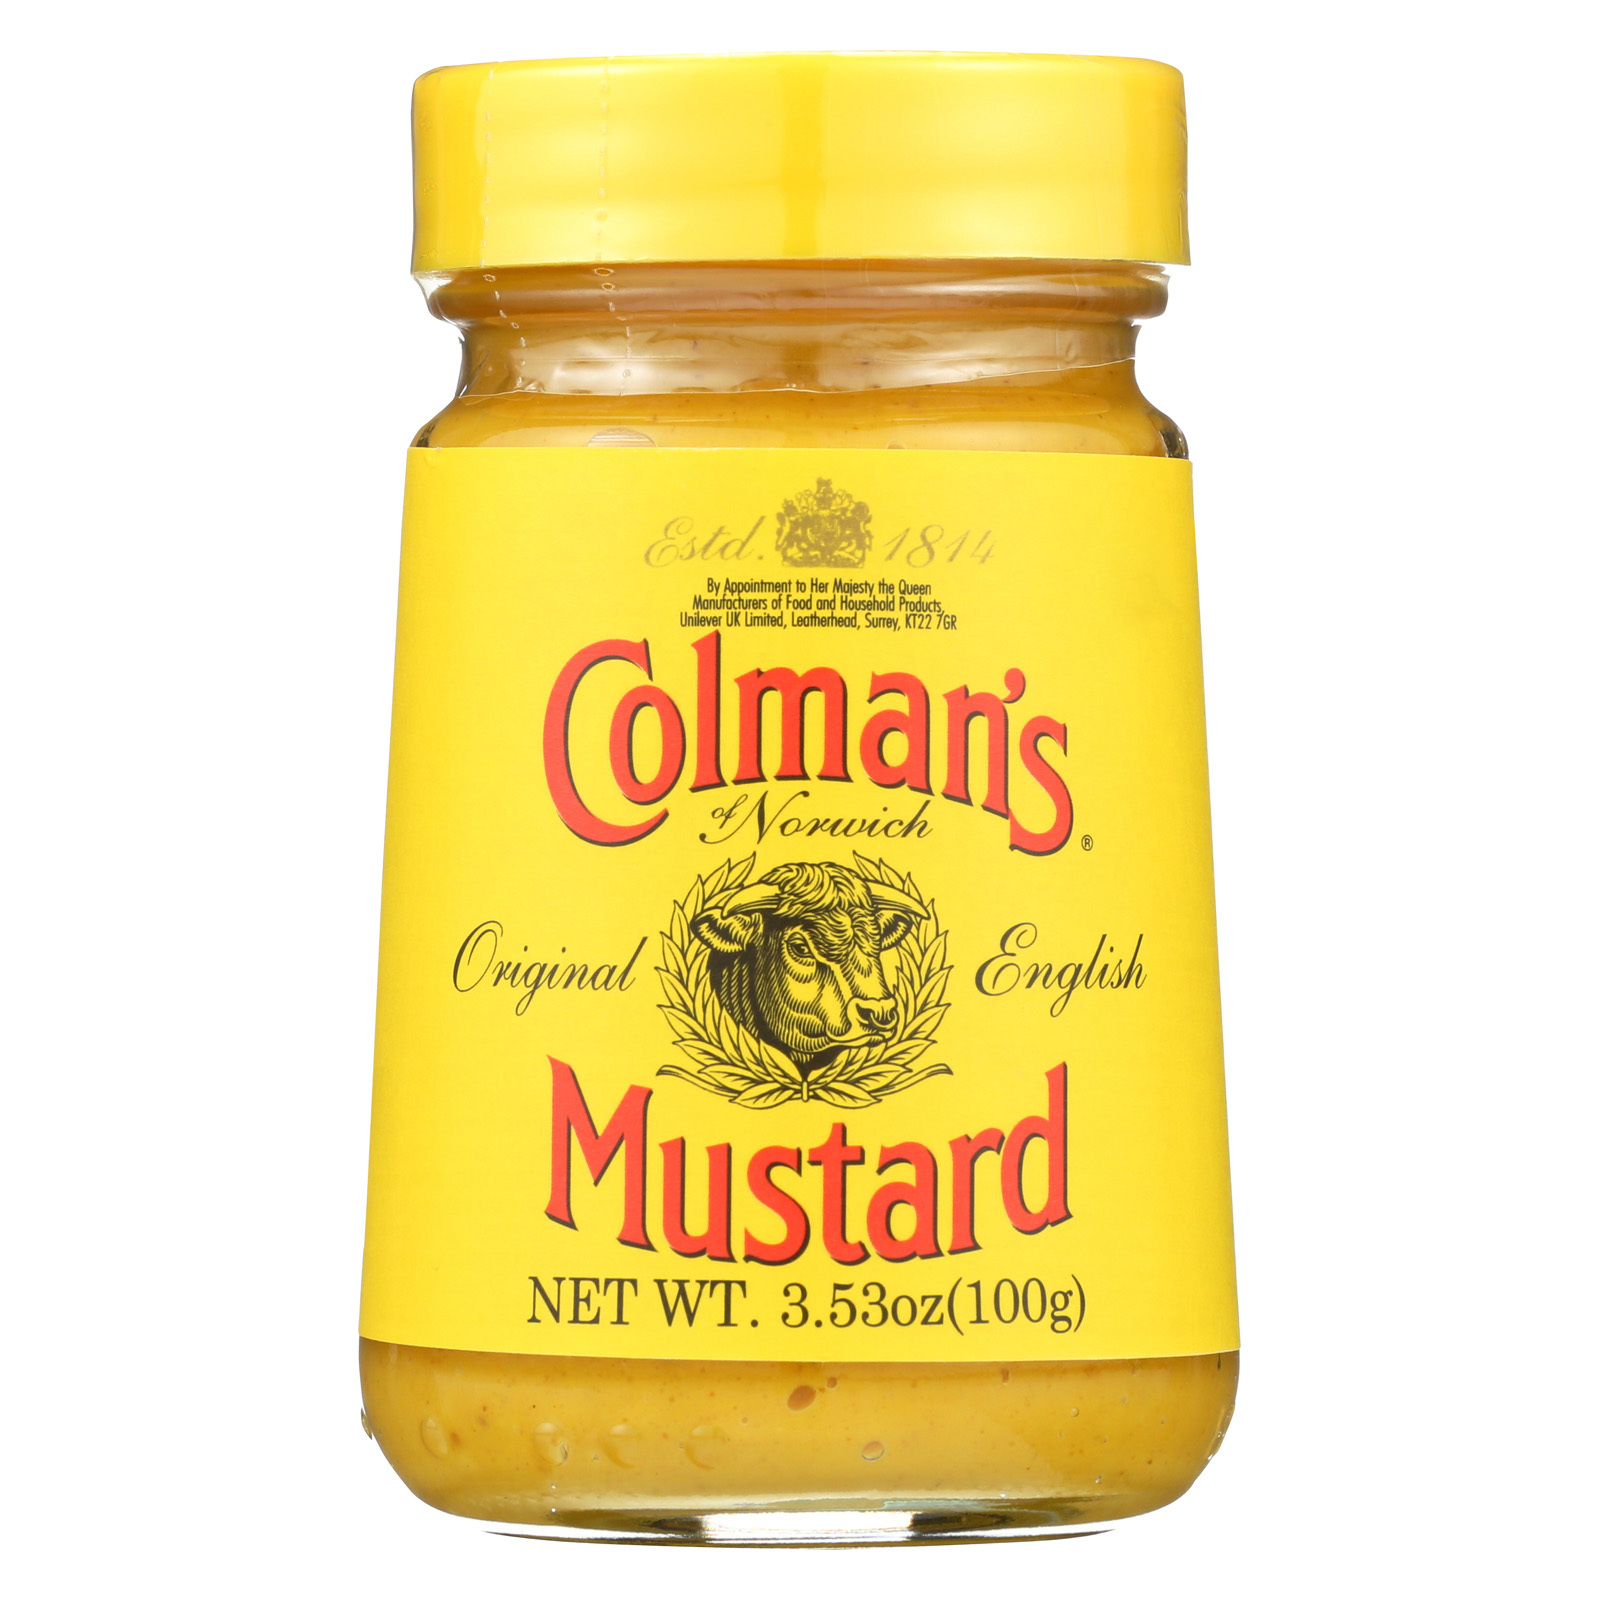 Colman Original English Mustard - Case of 8 - 3.53 oz.